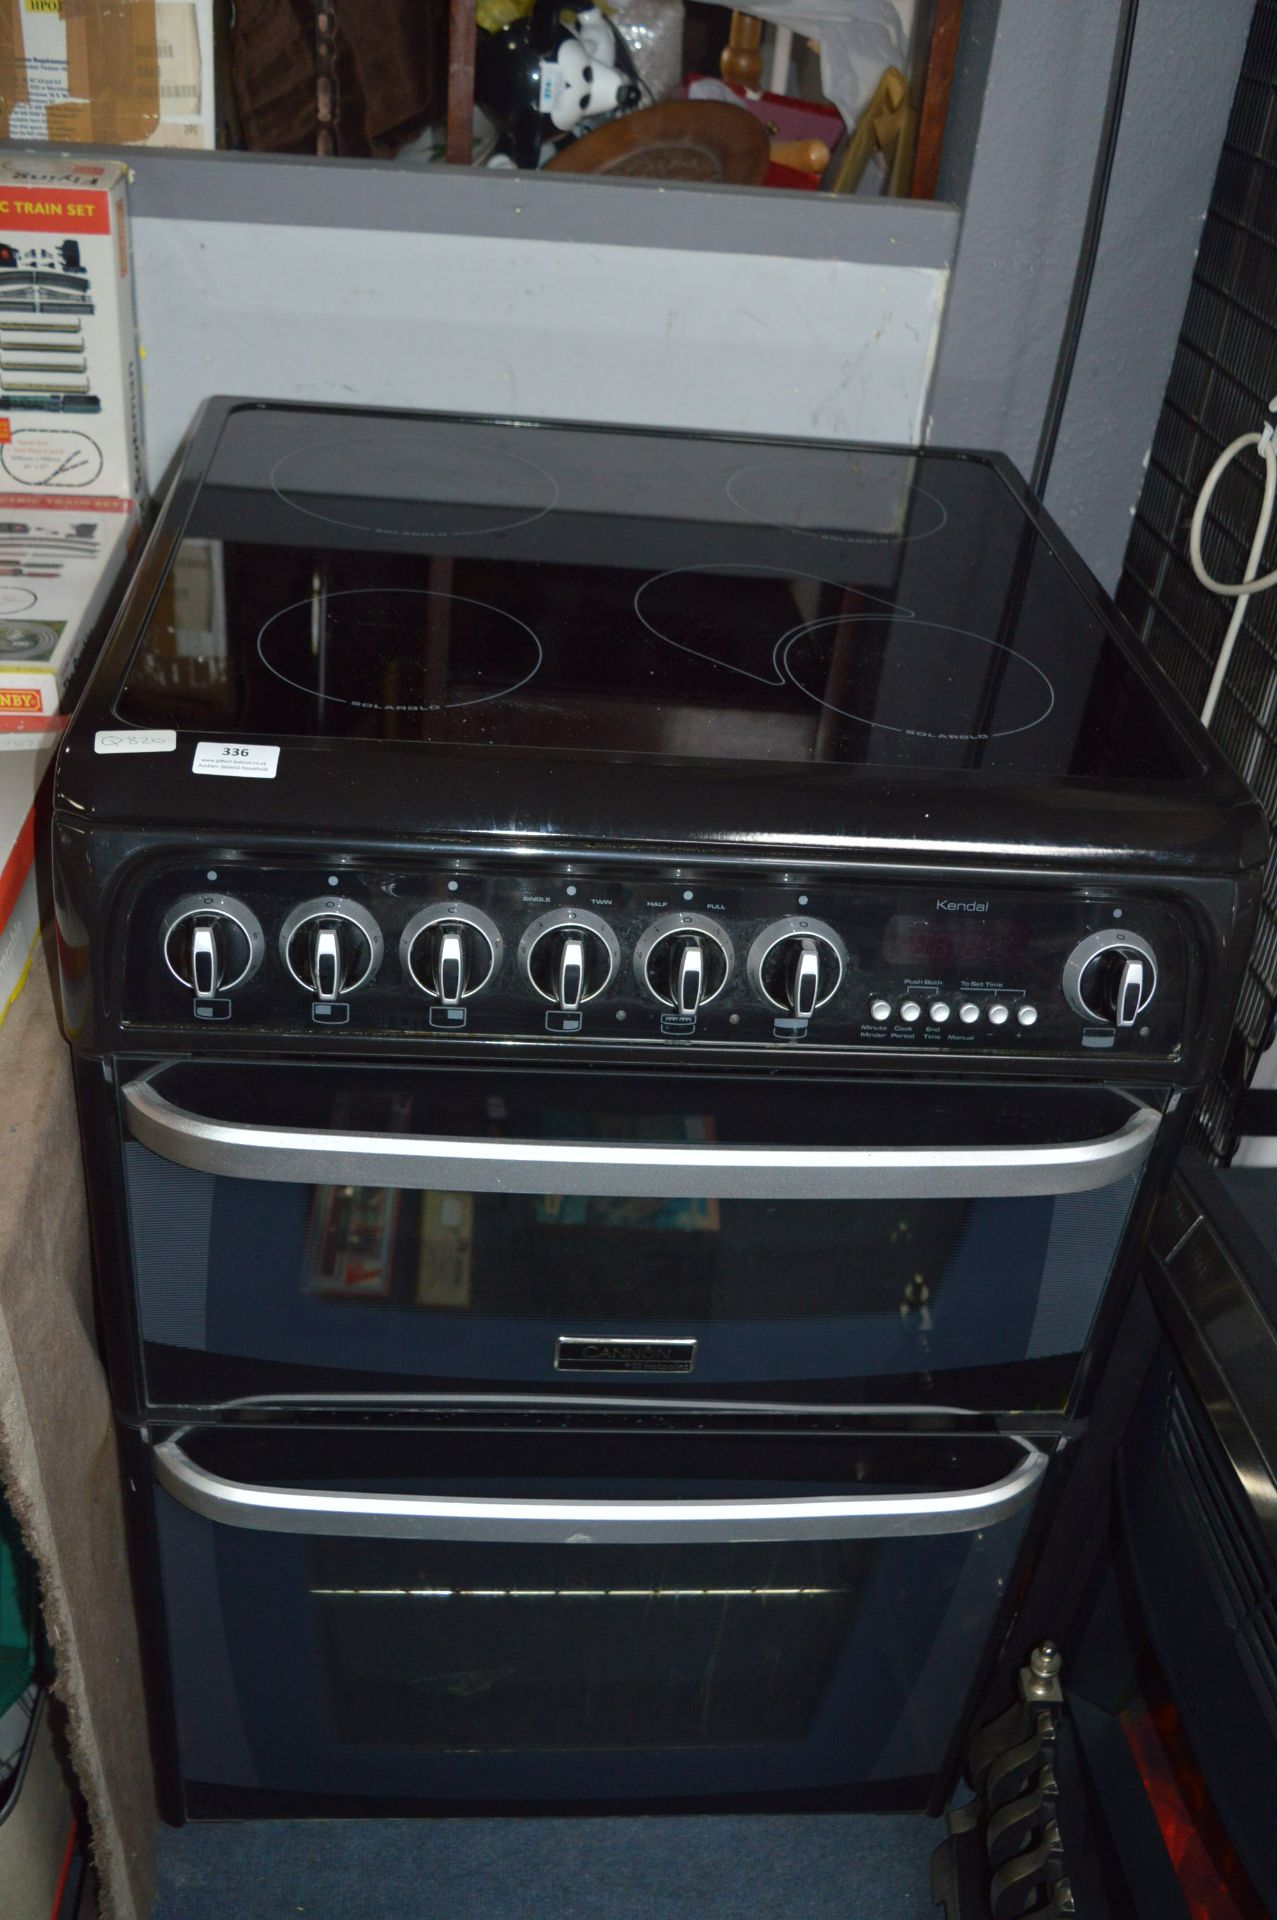 Lot 336 - Canon Hotpoint Cooker